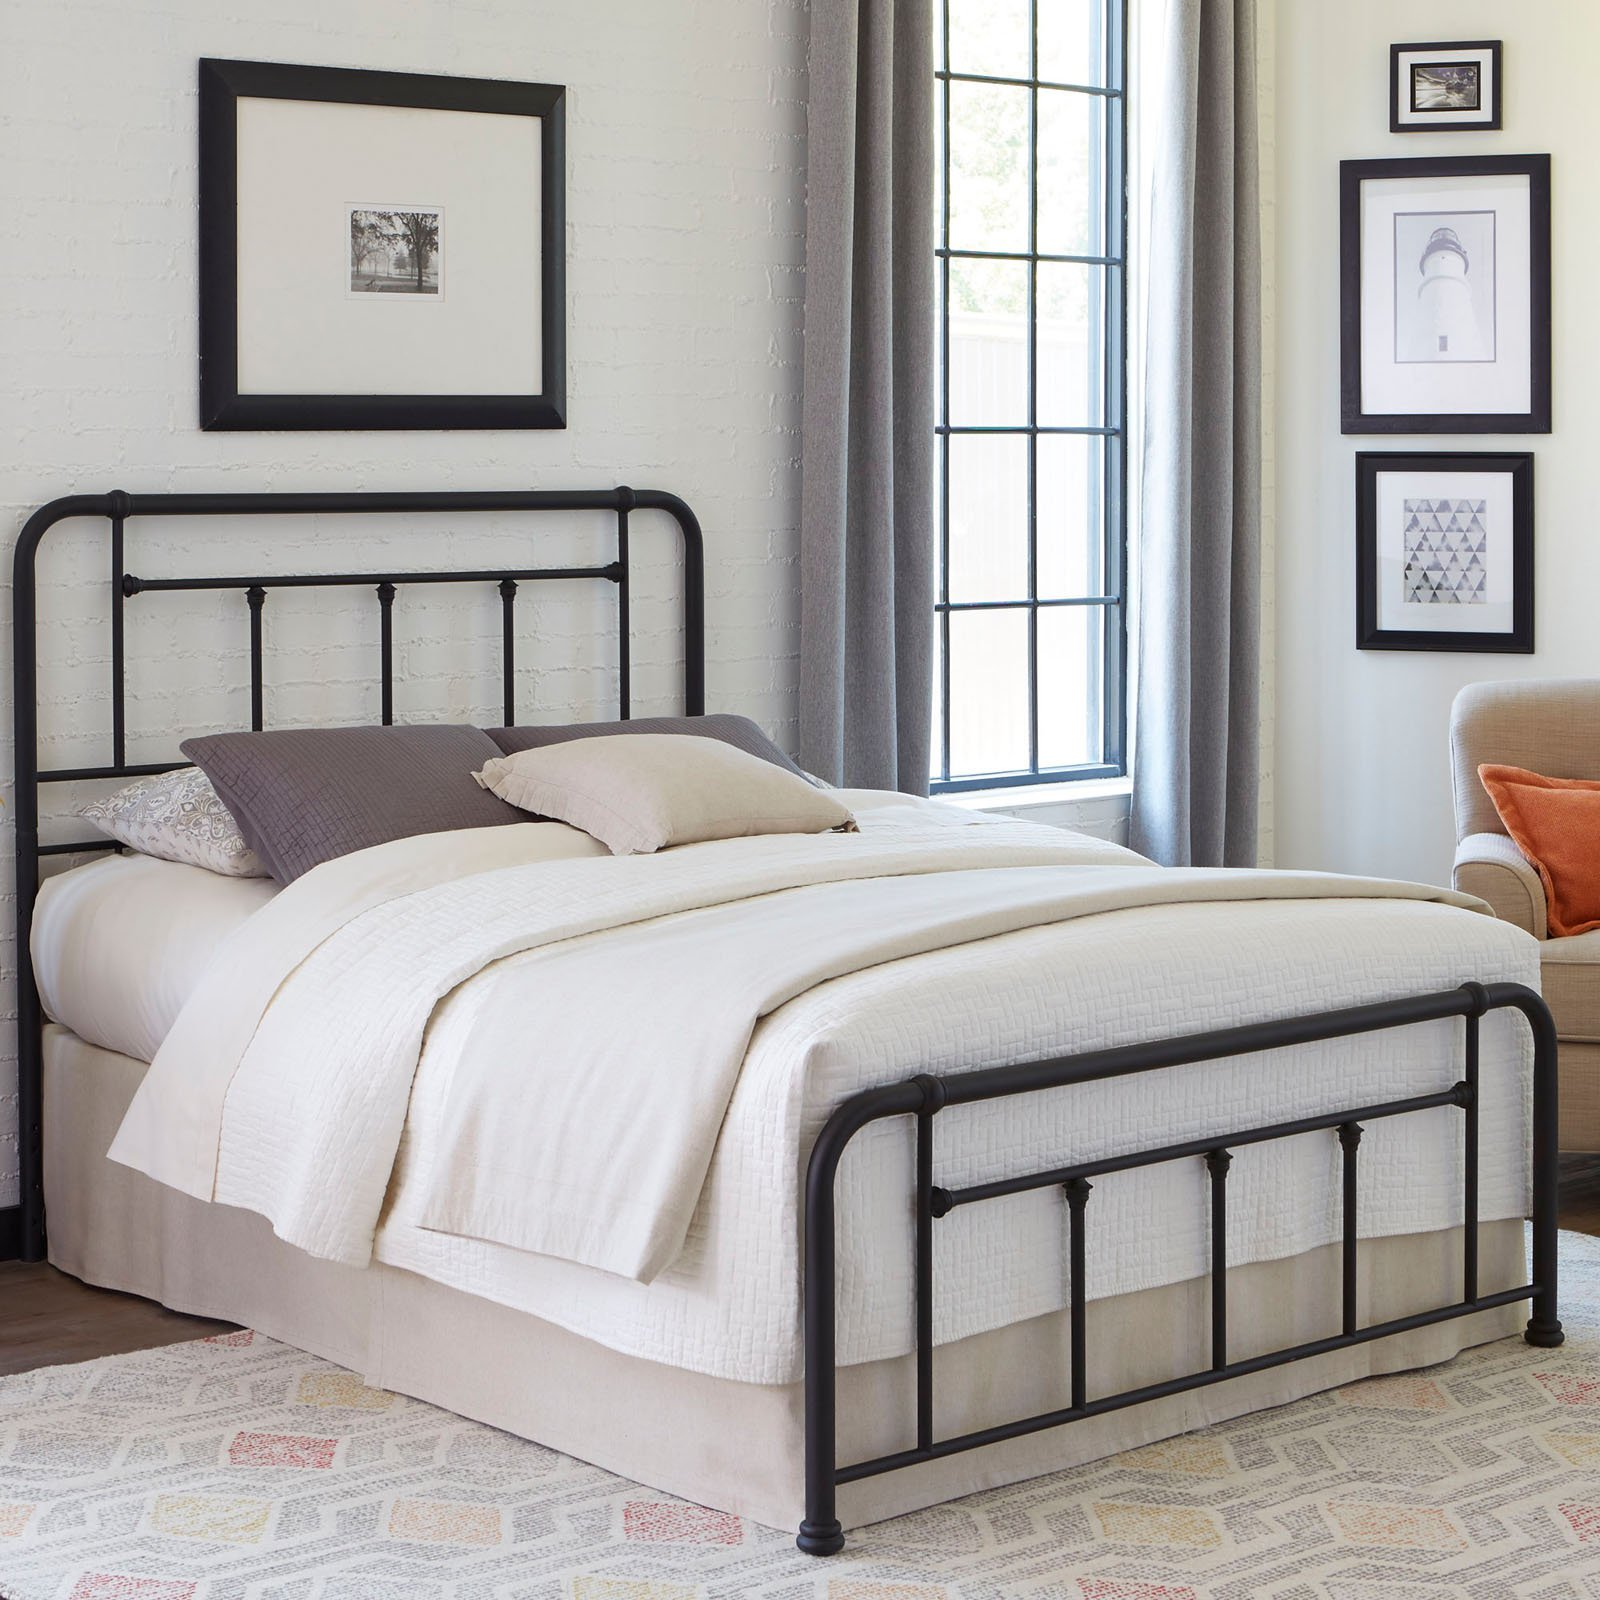 Baldwin Complete Bed with Metal Poststings, Textured Black Finish, Multiple sizes available